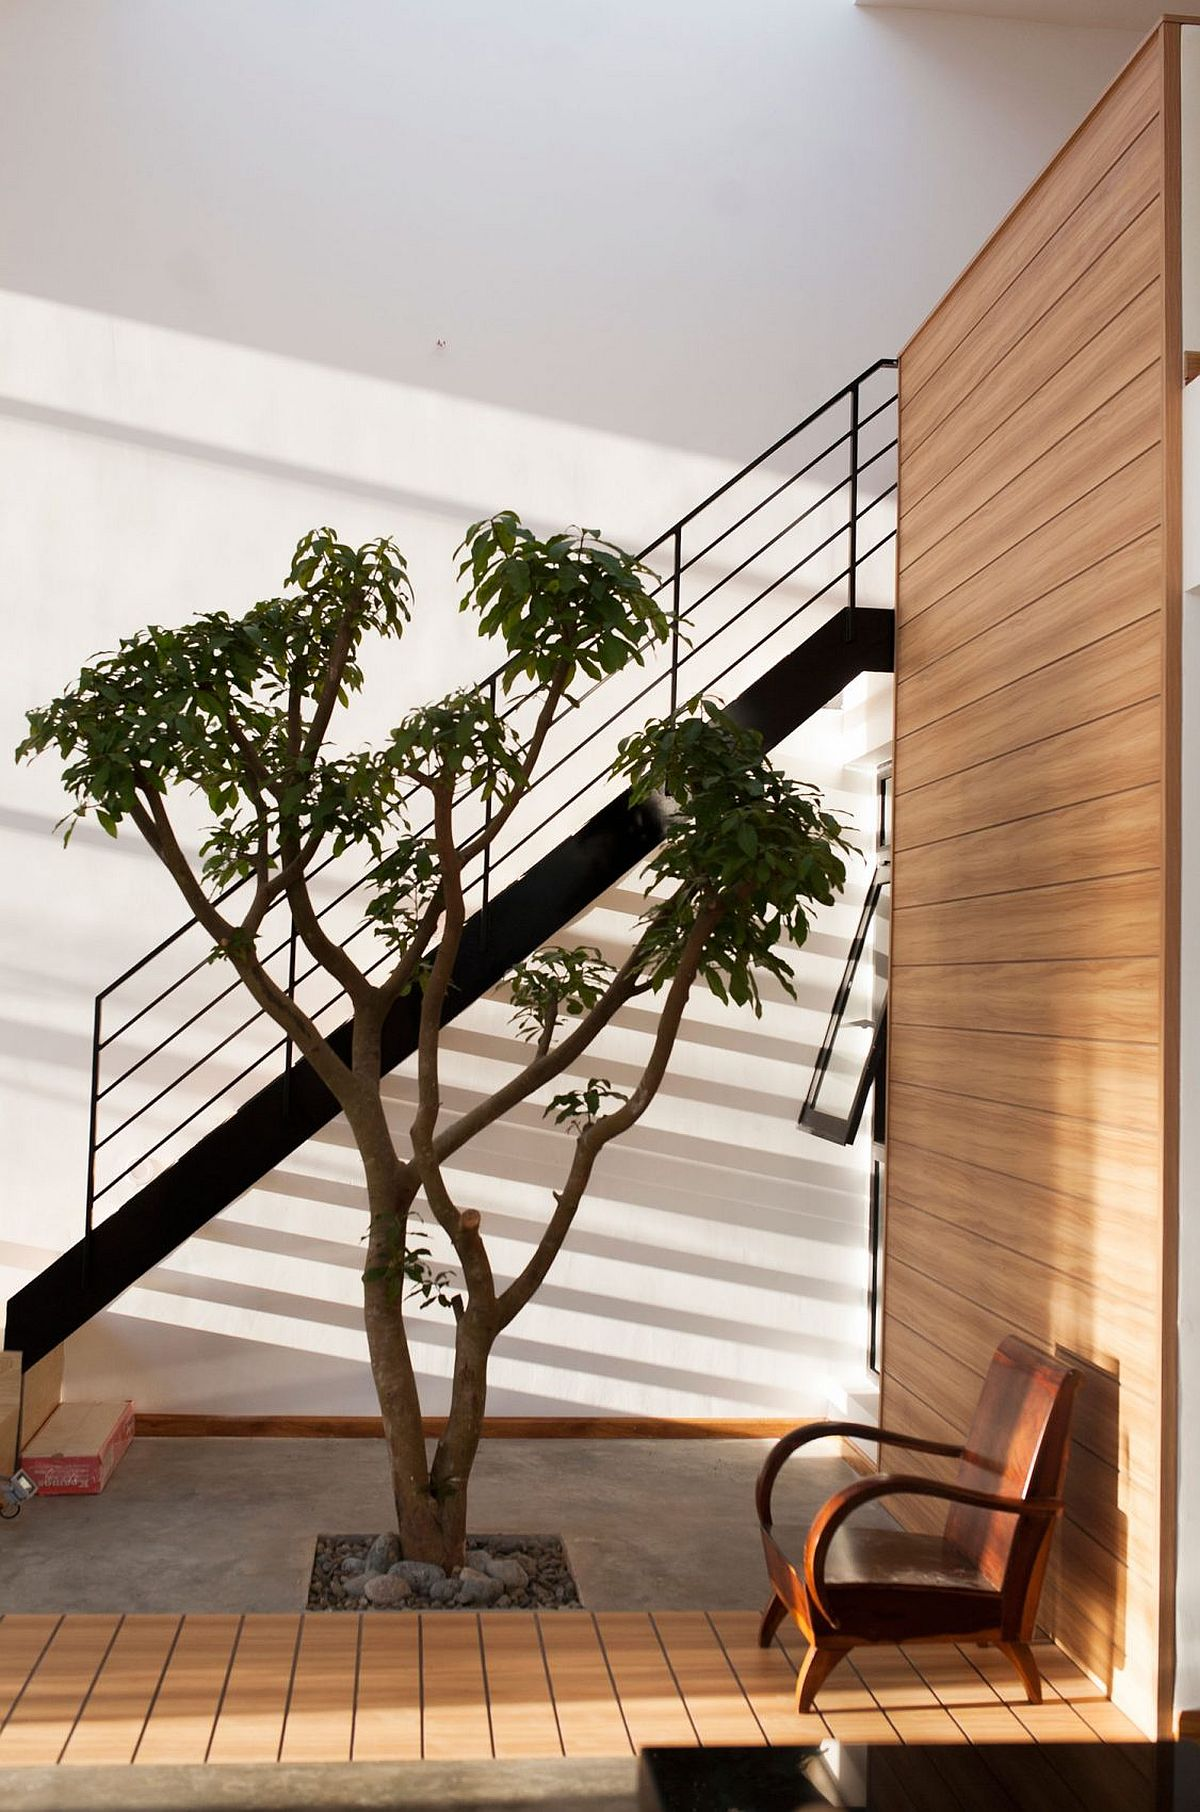 It is the persence of indoor tree that gives serenity and defines this cool Vietnamese home